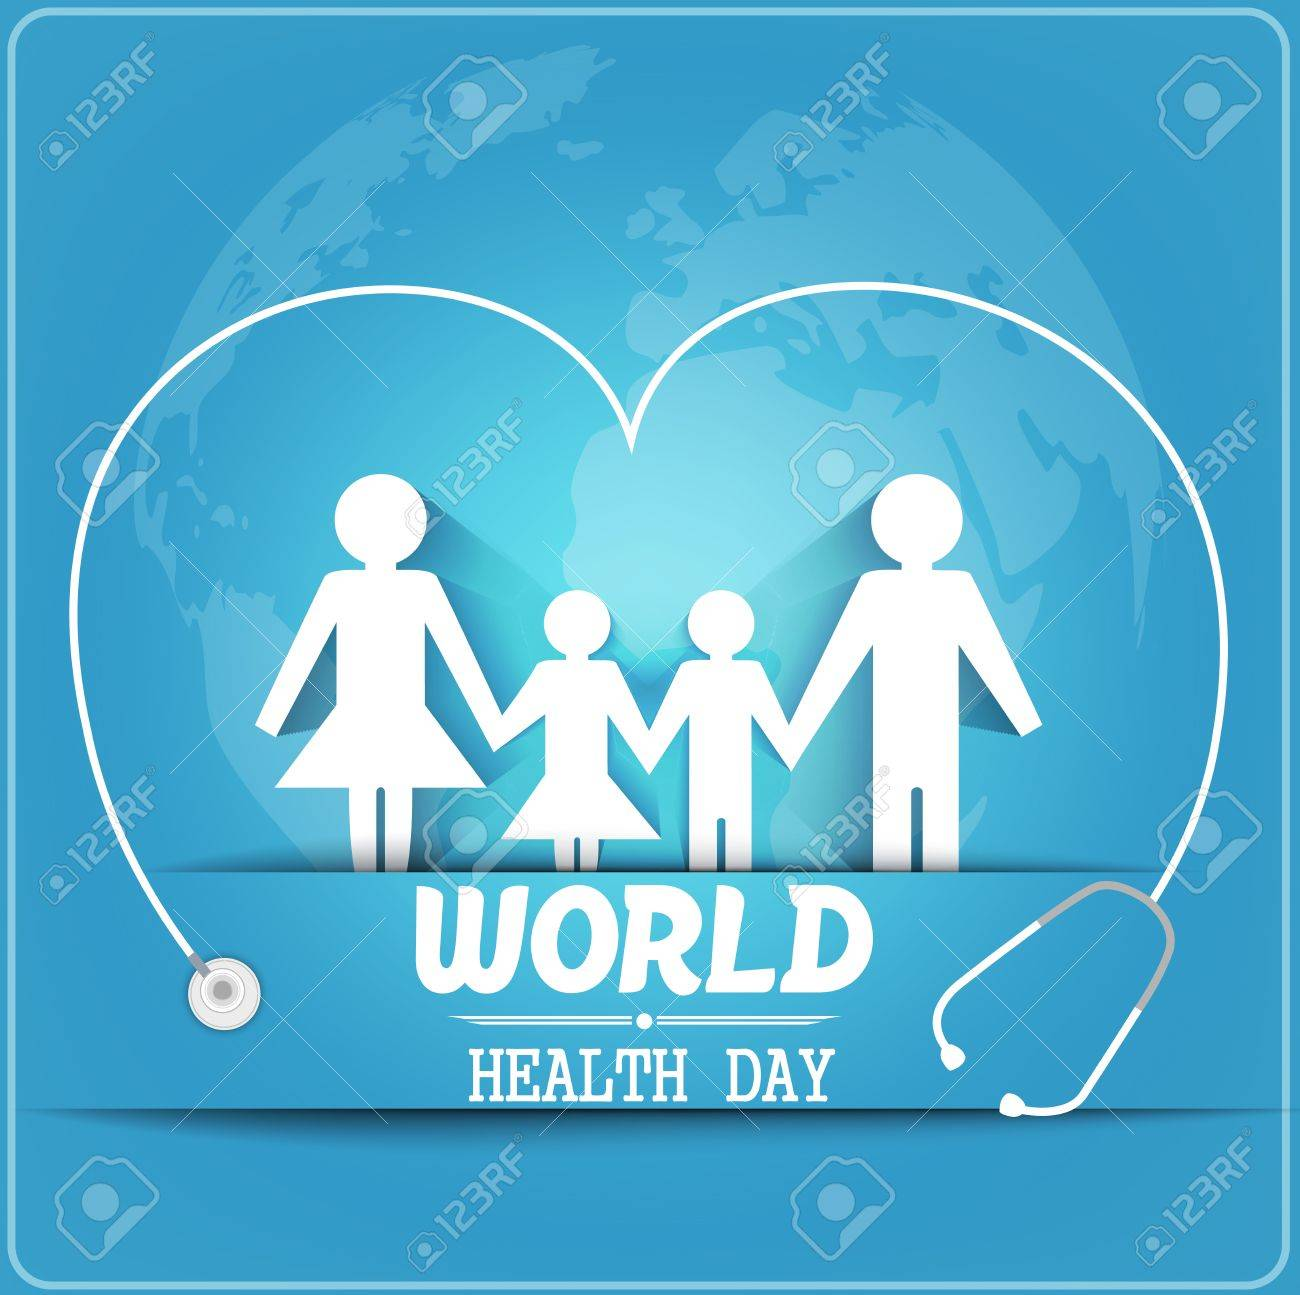 World health day concept with healthy family under stethoscope and globe - 55687110